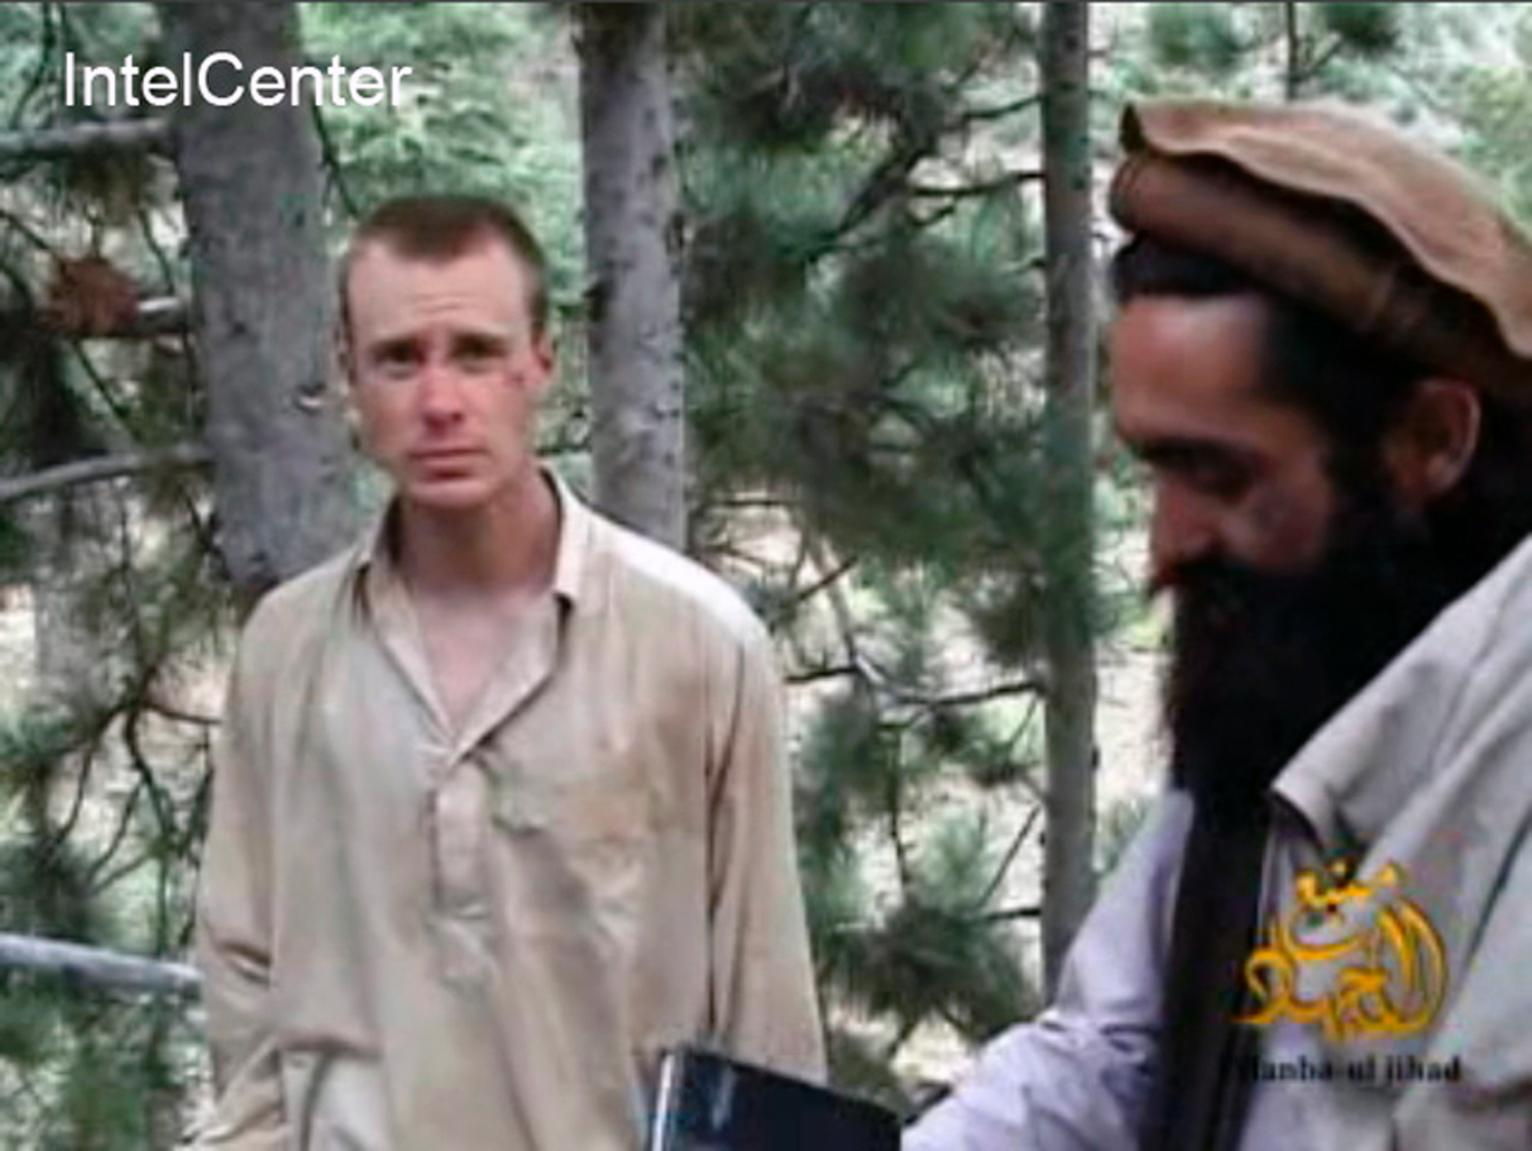 american pow sgt bowe bergdahl released in exchange for taliban american pow sgt bowe bergdahl released in exchange for 5 taliban detainees us news